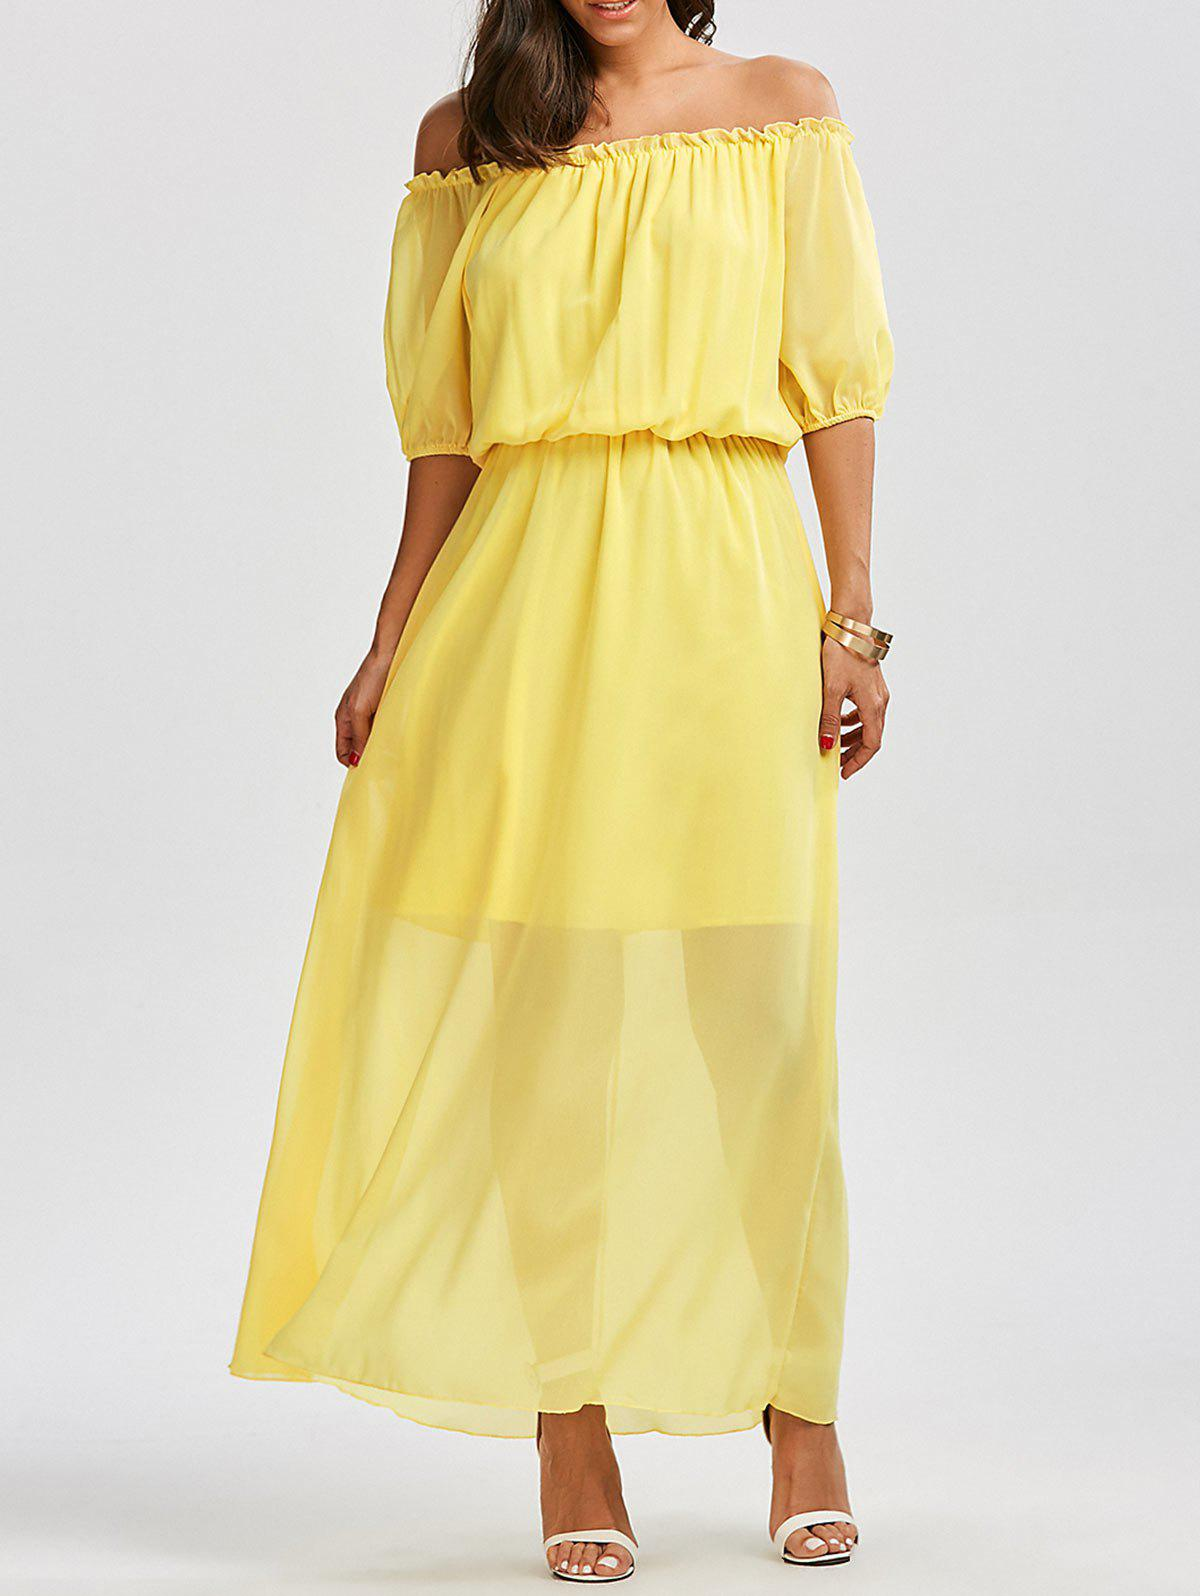 Shop High Waist Chiffon Off The Shoulder Maxi Dress